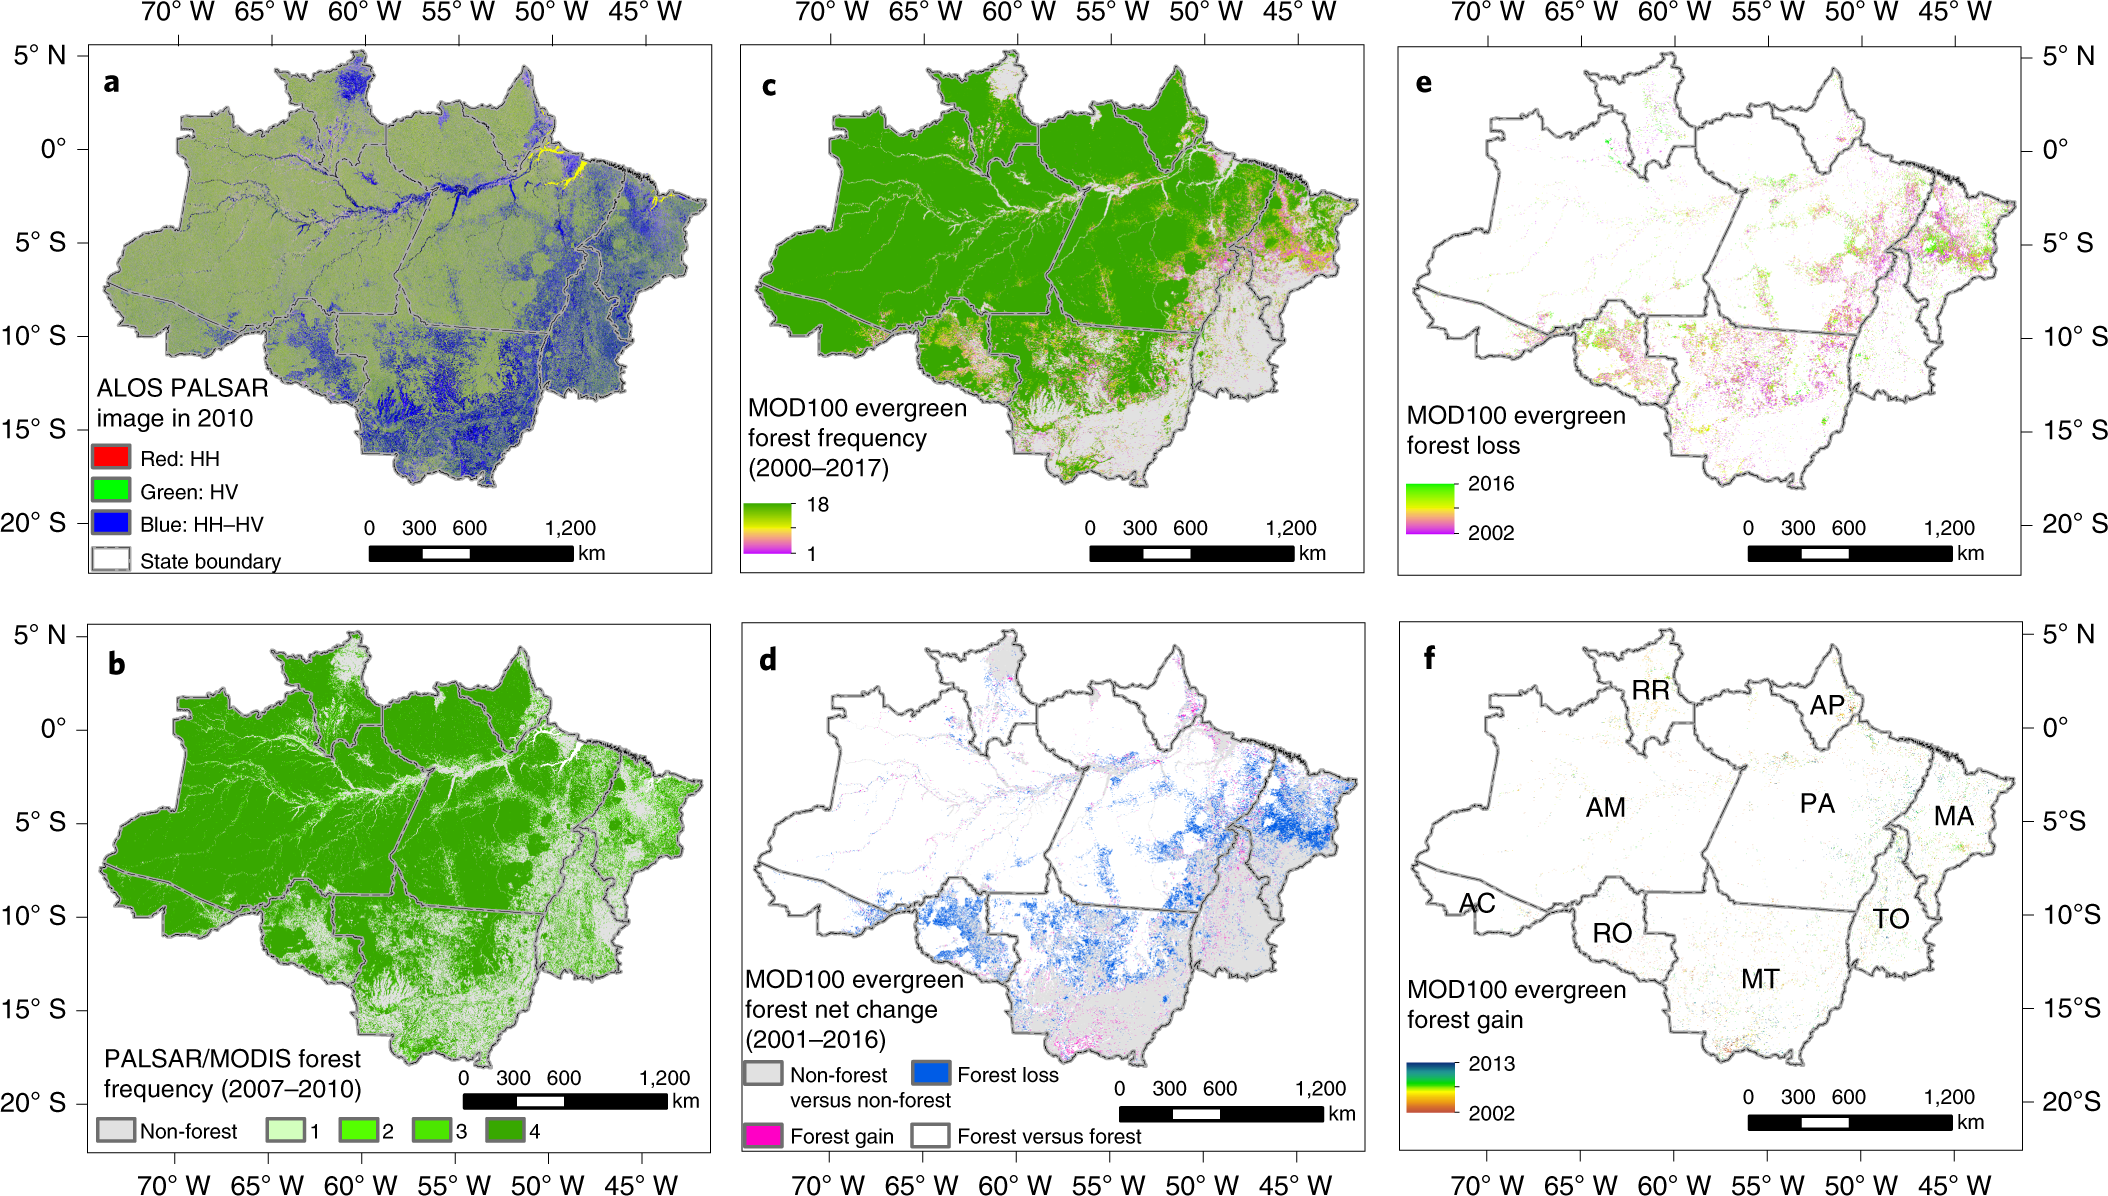 Improved estimates of forest cover and loss in the Brazilian Amazon in